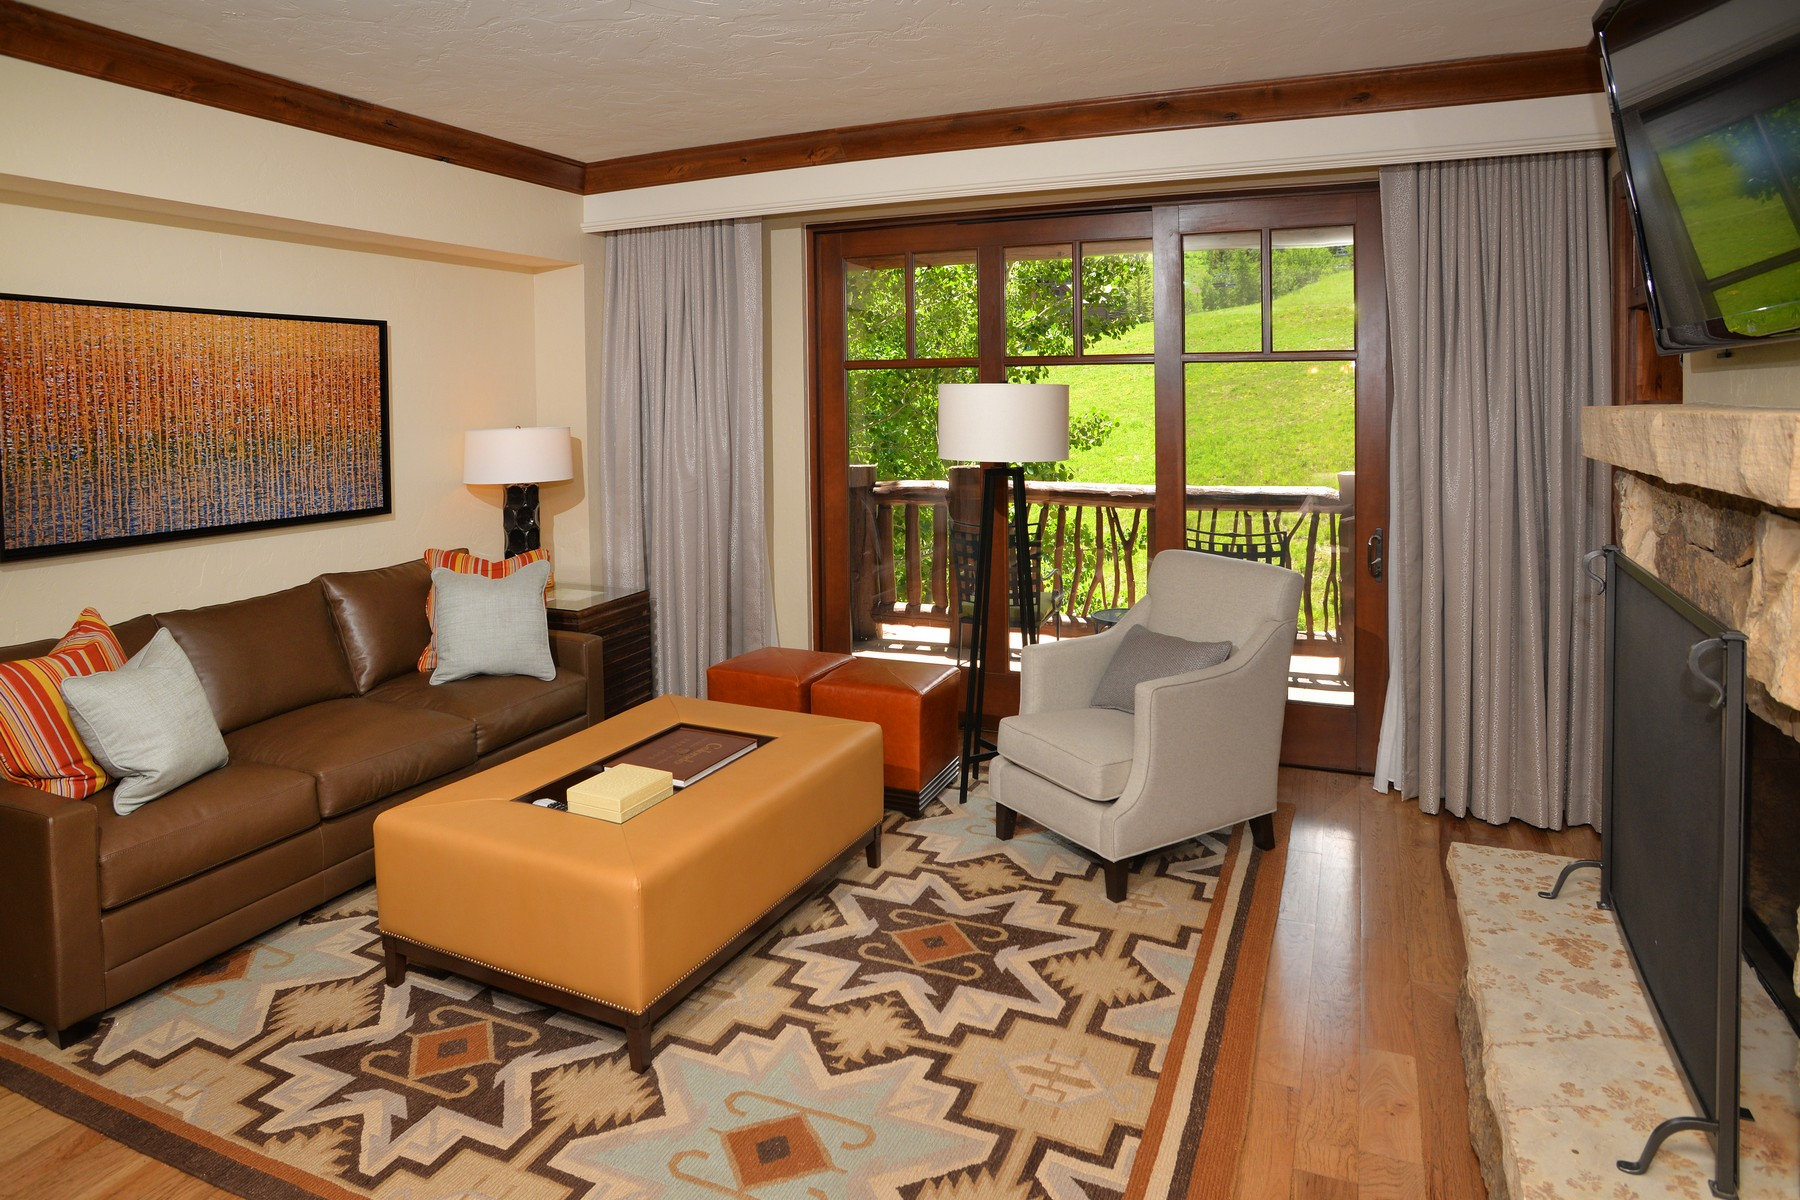 Fractional Ownership for Active at Timbers Bachelor Gulch 3405-07 100 Bachelor Ridge #3405-07 Beaver Creek, Colorado 81620 United States